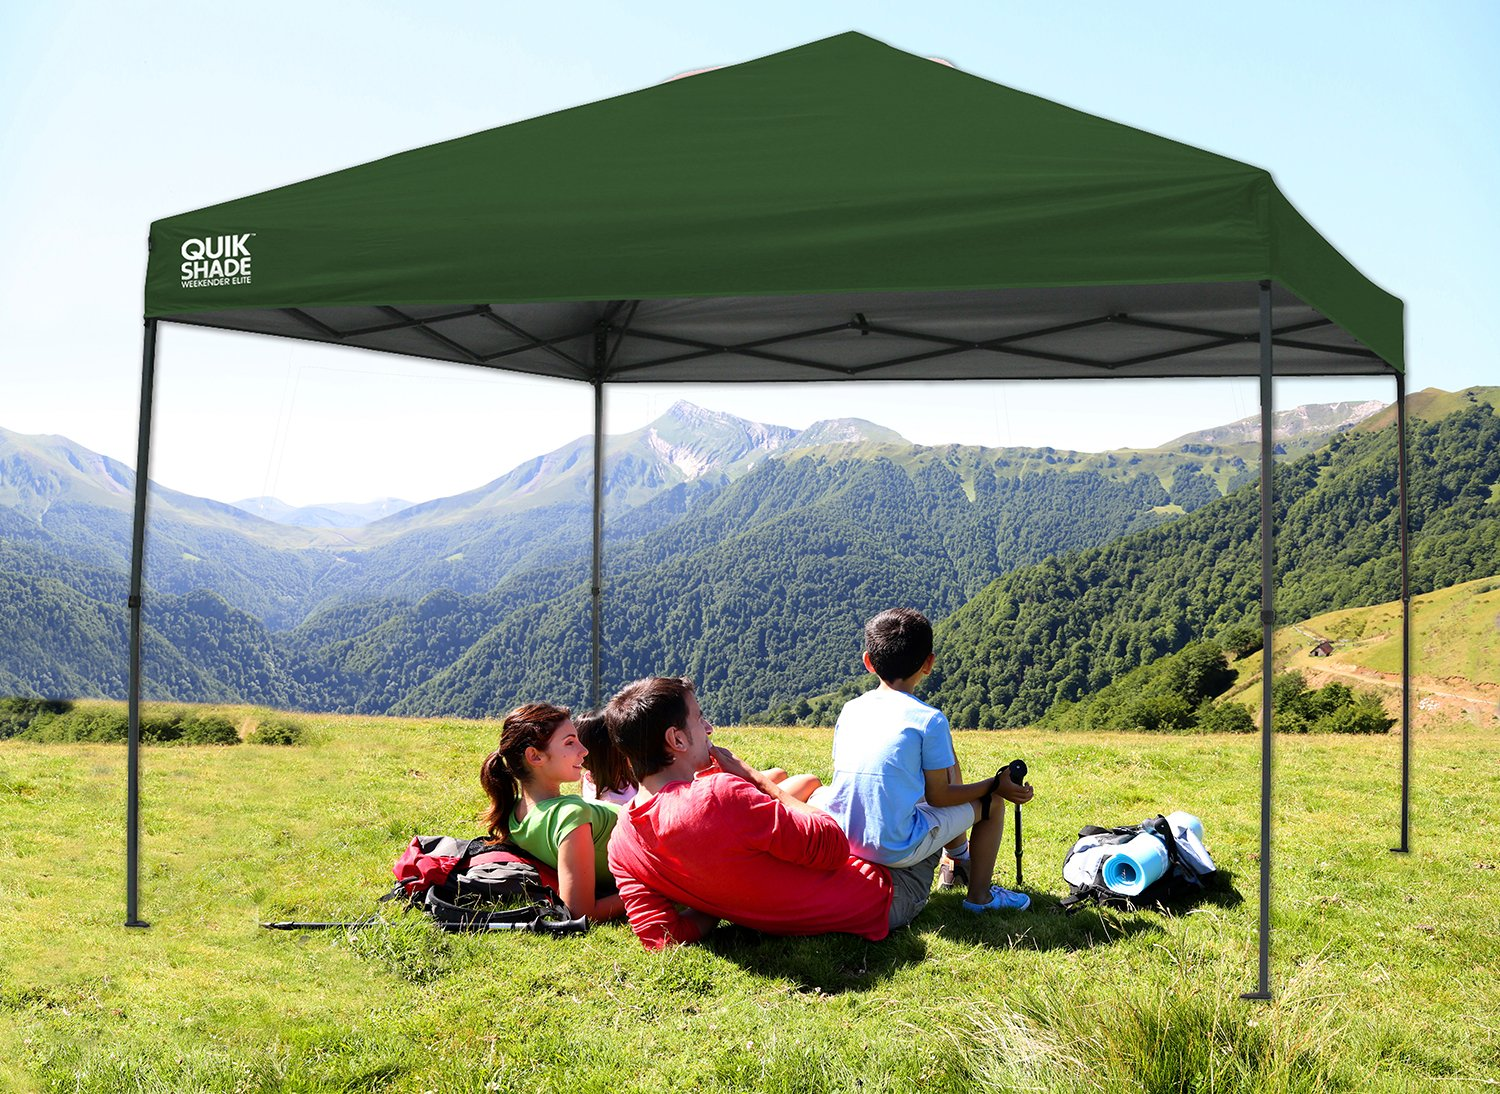 Amazon.com Quik Shade Weekender Elite WE100 10u0027x10u0027 Instant Canopy - Green Sports u0026 Outdoors & Amazon.com: Quik Shade Weekender Elite WE100 10u0027x10u0027 Instant ...